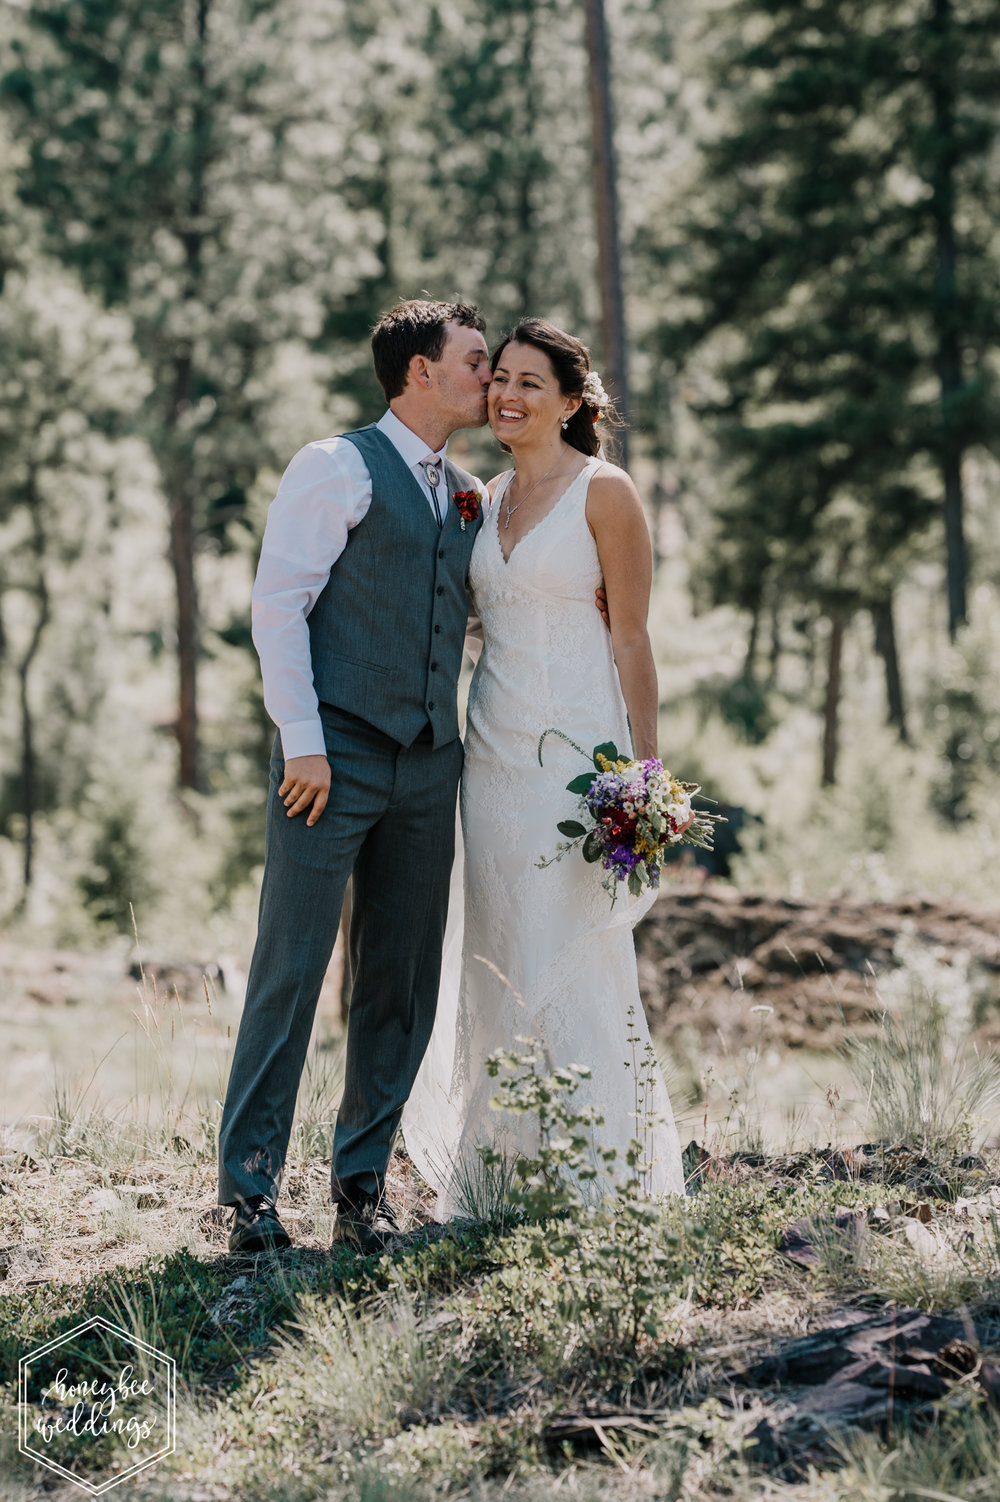 171 White Raven Wedding_Montana Wedding Photographer_Honeybee Weddings_ Meghan Maloney + Arza Hammond 2018-8417.jpg